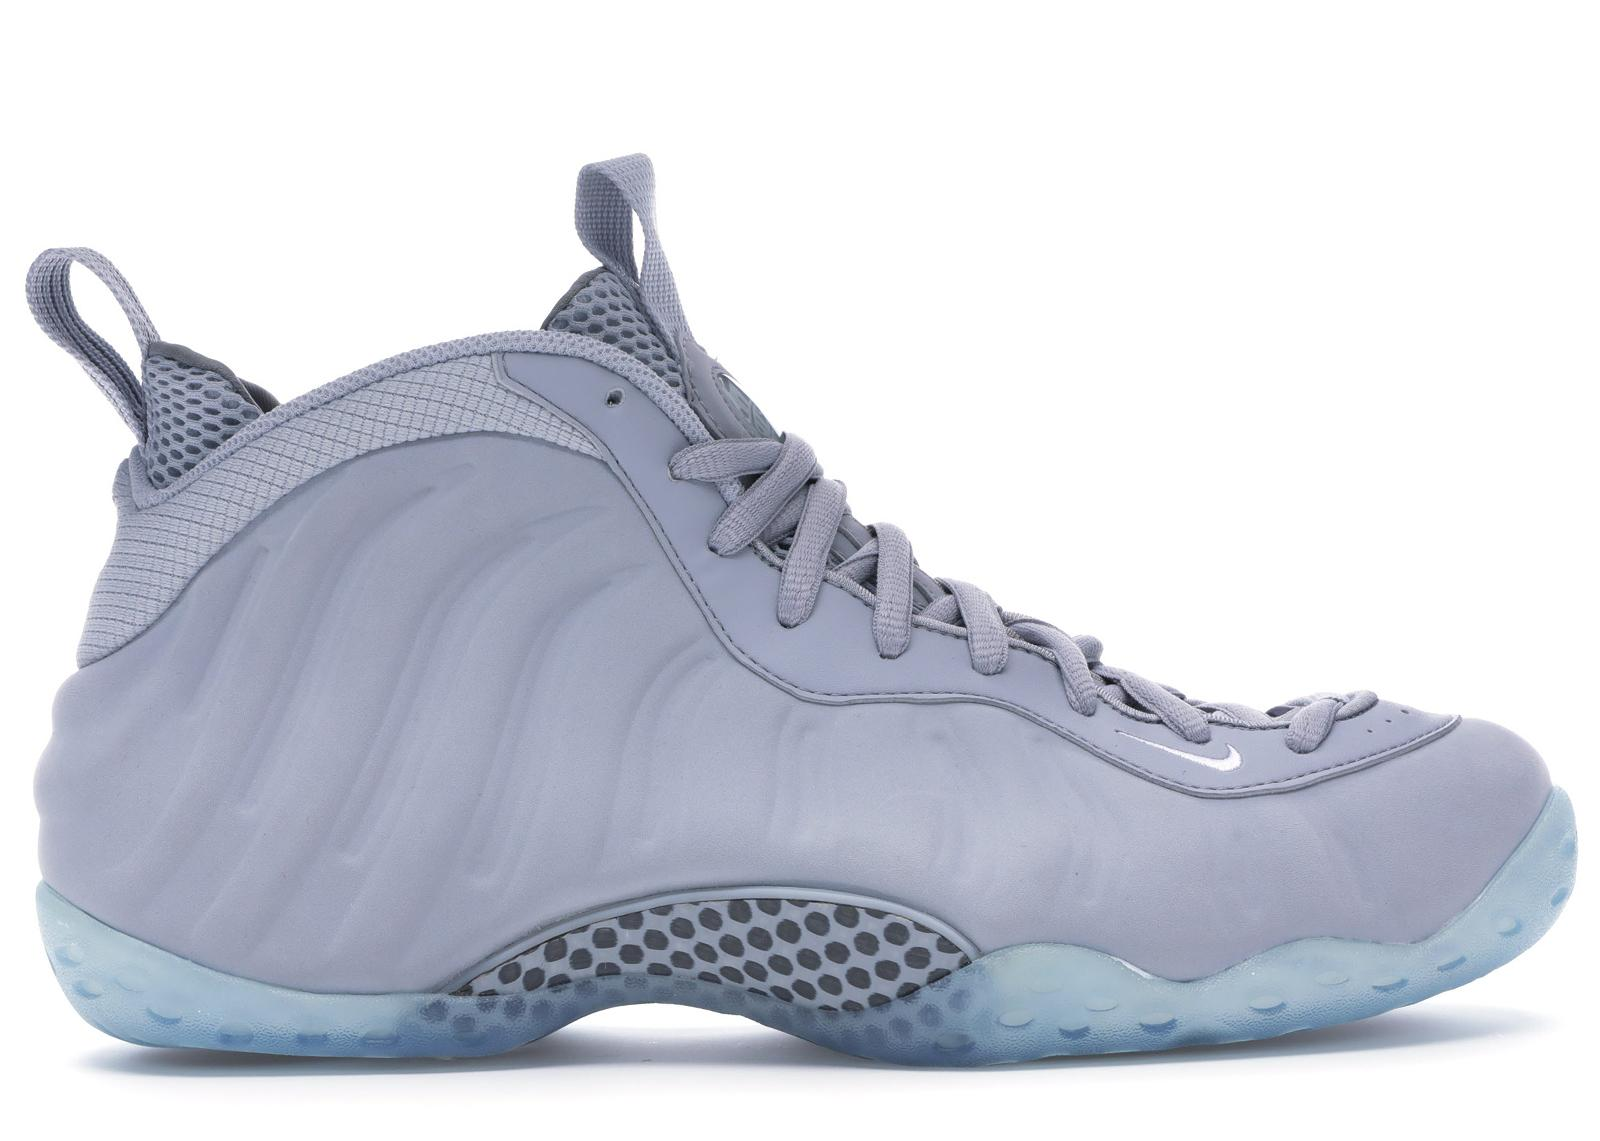 lowest price 7ab06 b16c4 Men's Air Foamposite One Wolf Gray Suede